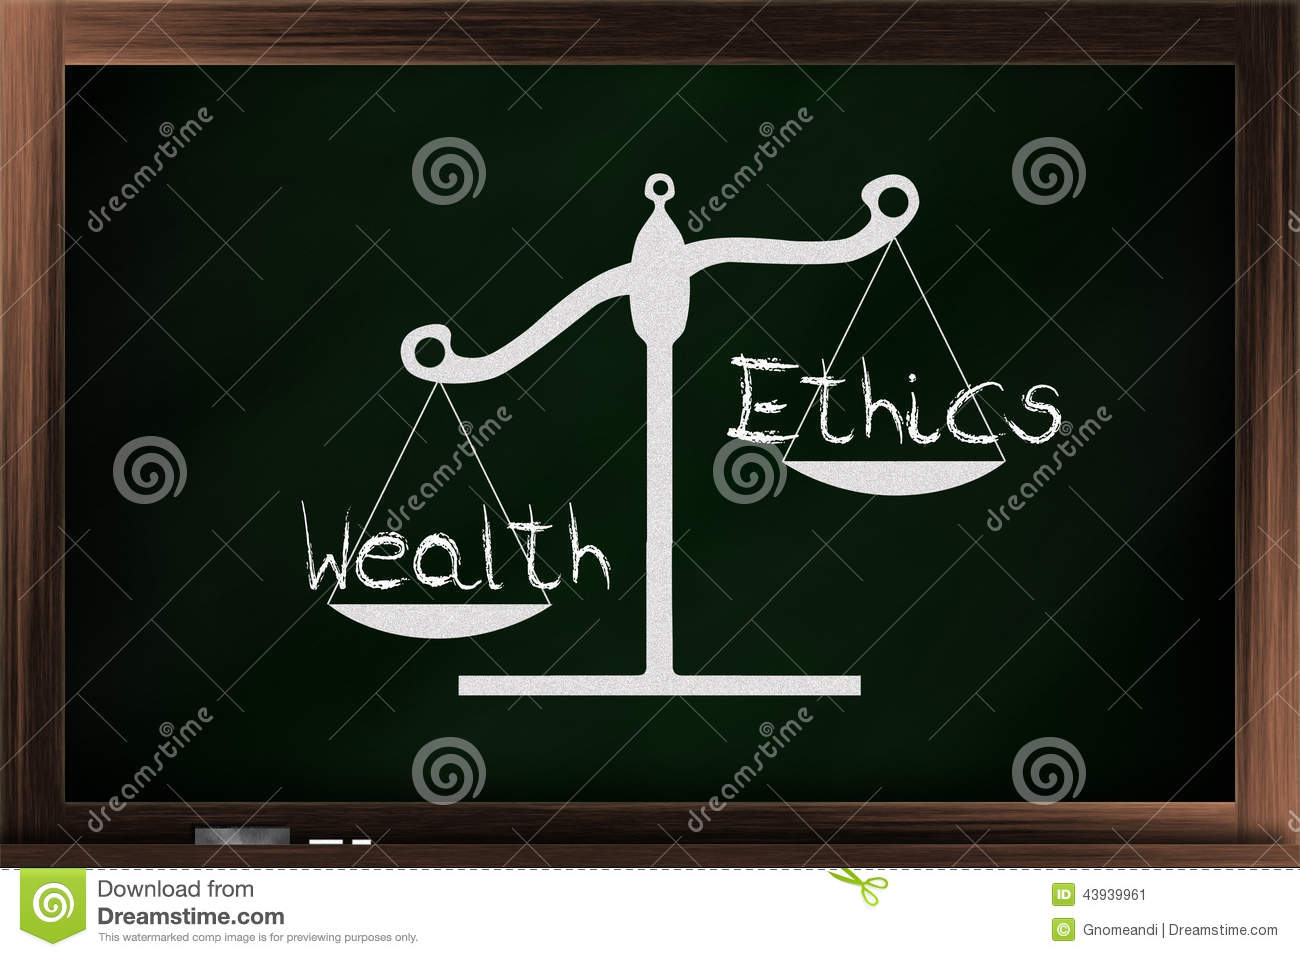 ethics of wealth Workers use labor to create wealth for entrepreneurs — the an opinion essay on may 13 about ethics and capitalism misstated the findings of a 2010.